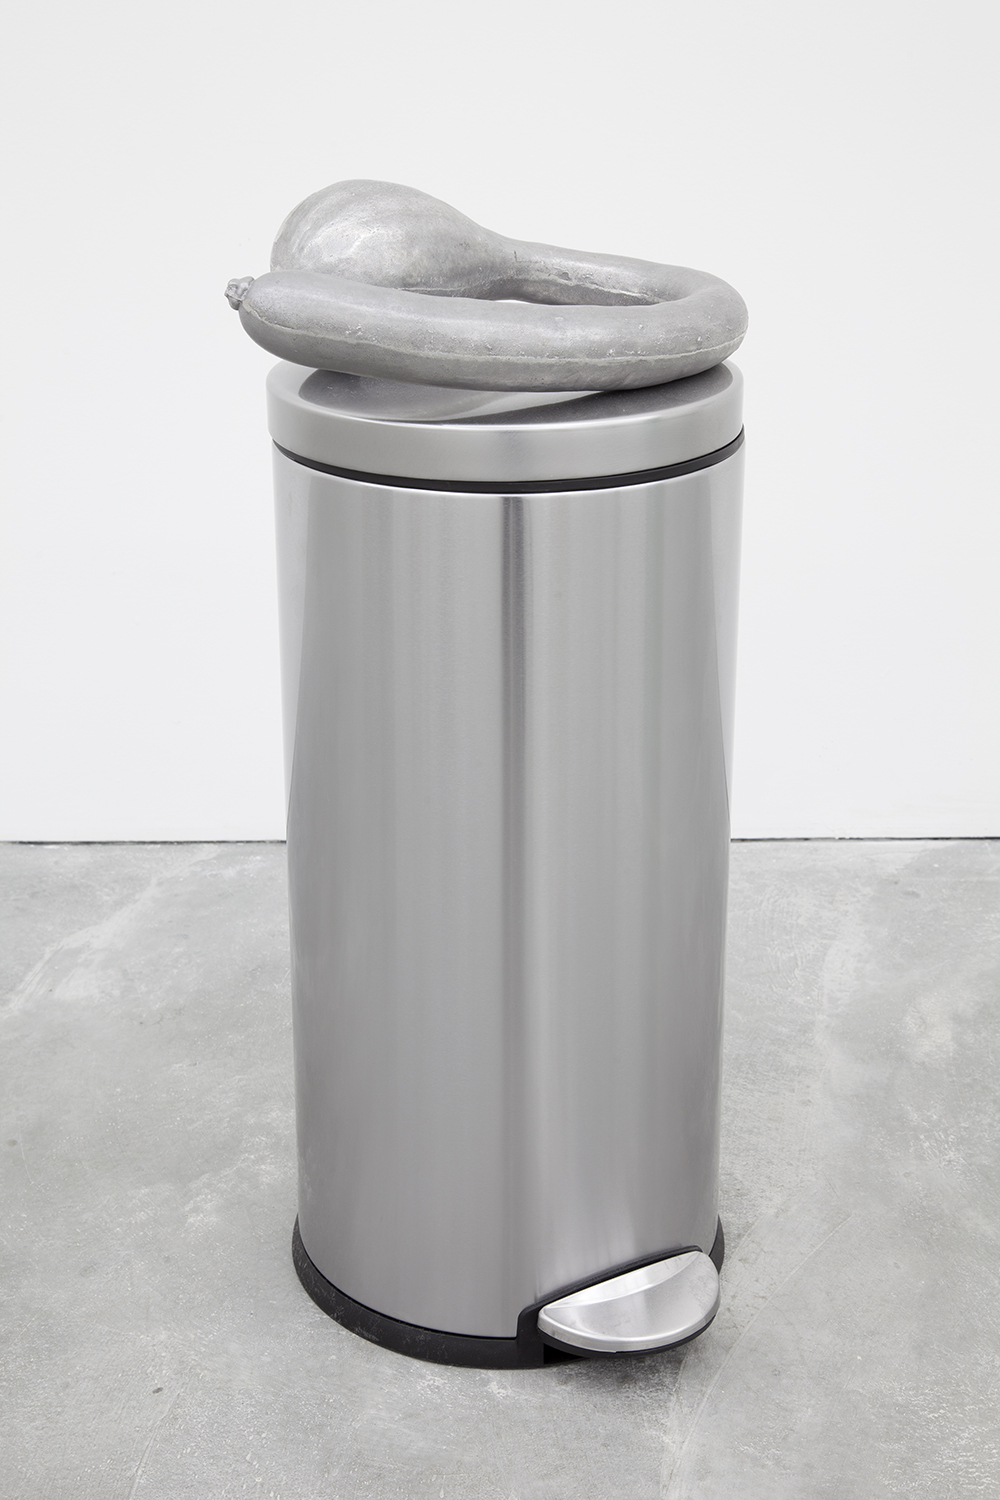 Miles Huston  Matriarchal Uniformity , 2015 Aluminum, stainless steel trash can 30 x 15 x 12.5 inches